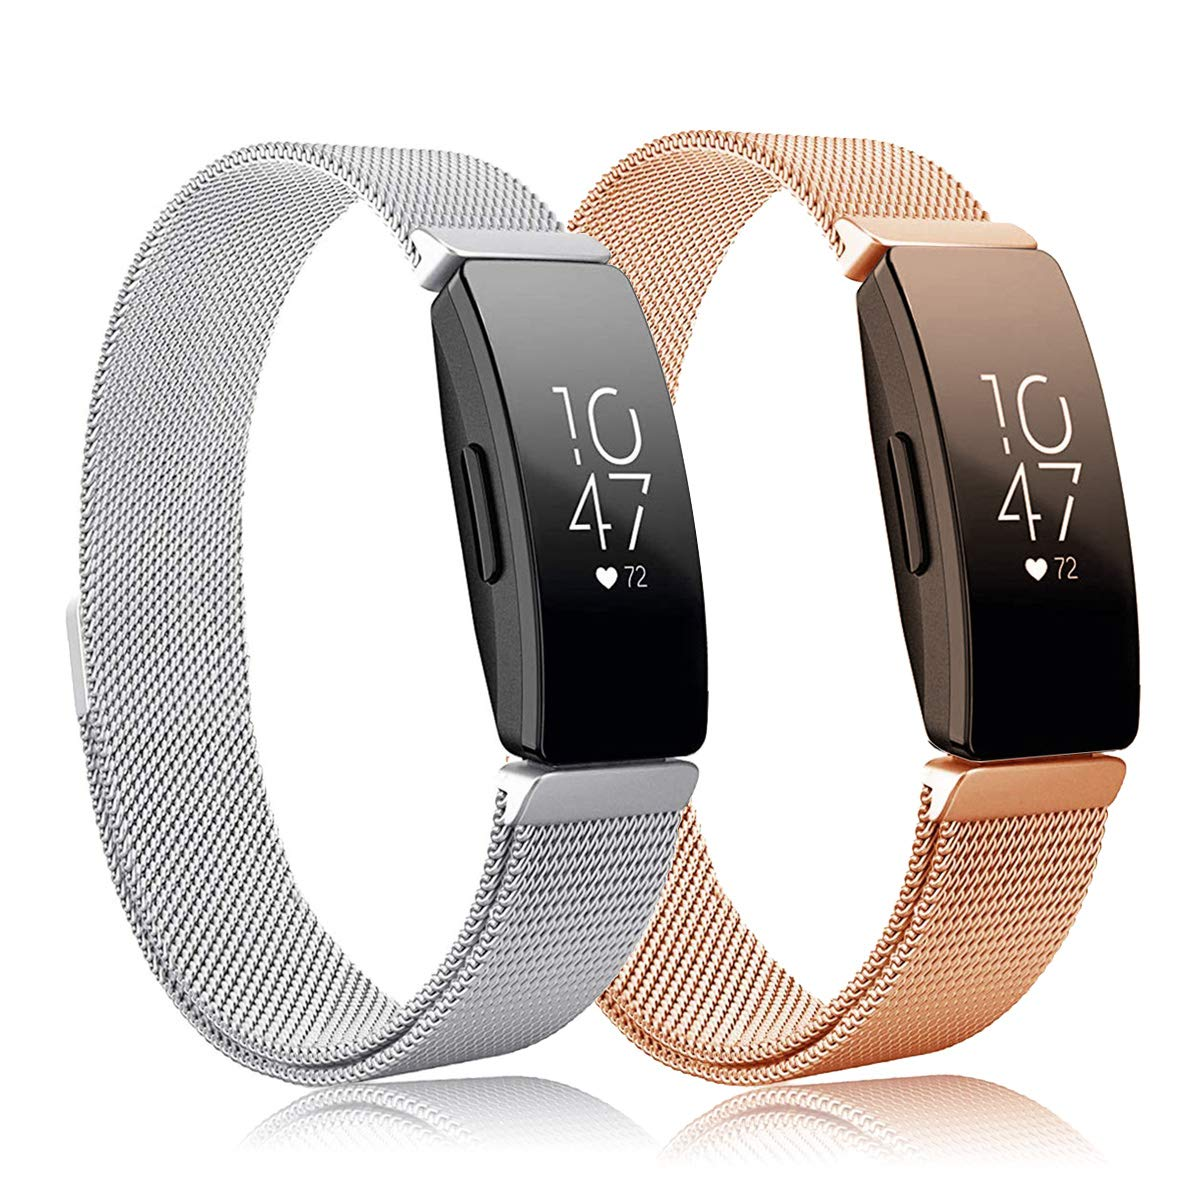 Intoval Bands Compatible with Fitbit Inspire HR Bands/Fitbit Inspire Band,Inspire hr Metal Stainless Steel Magnetic Men Women Replacement Bands for Fitbit Inspire & Inspire HR Fitness Tracker. by Intoval